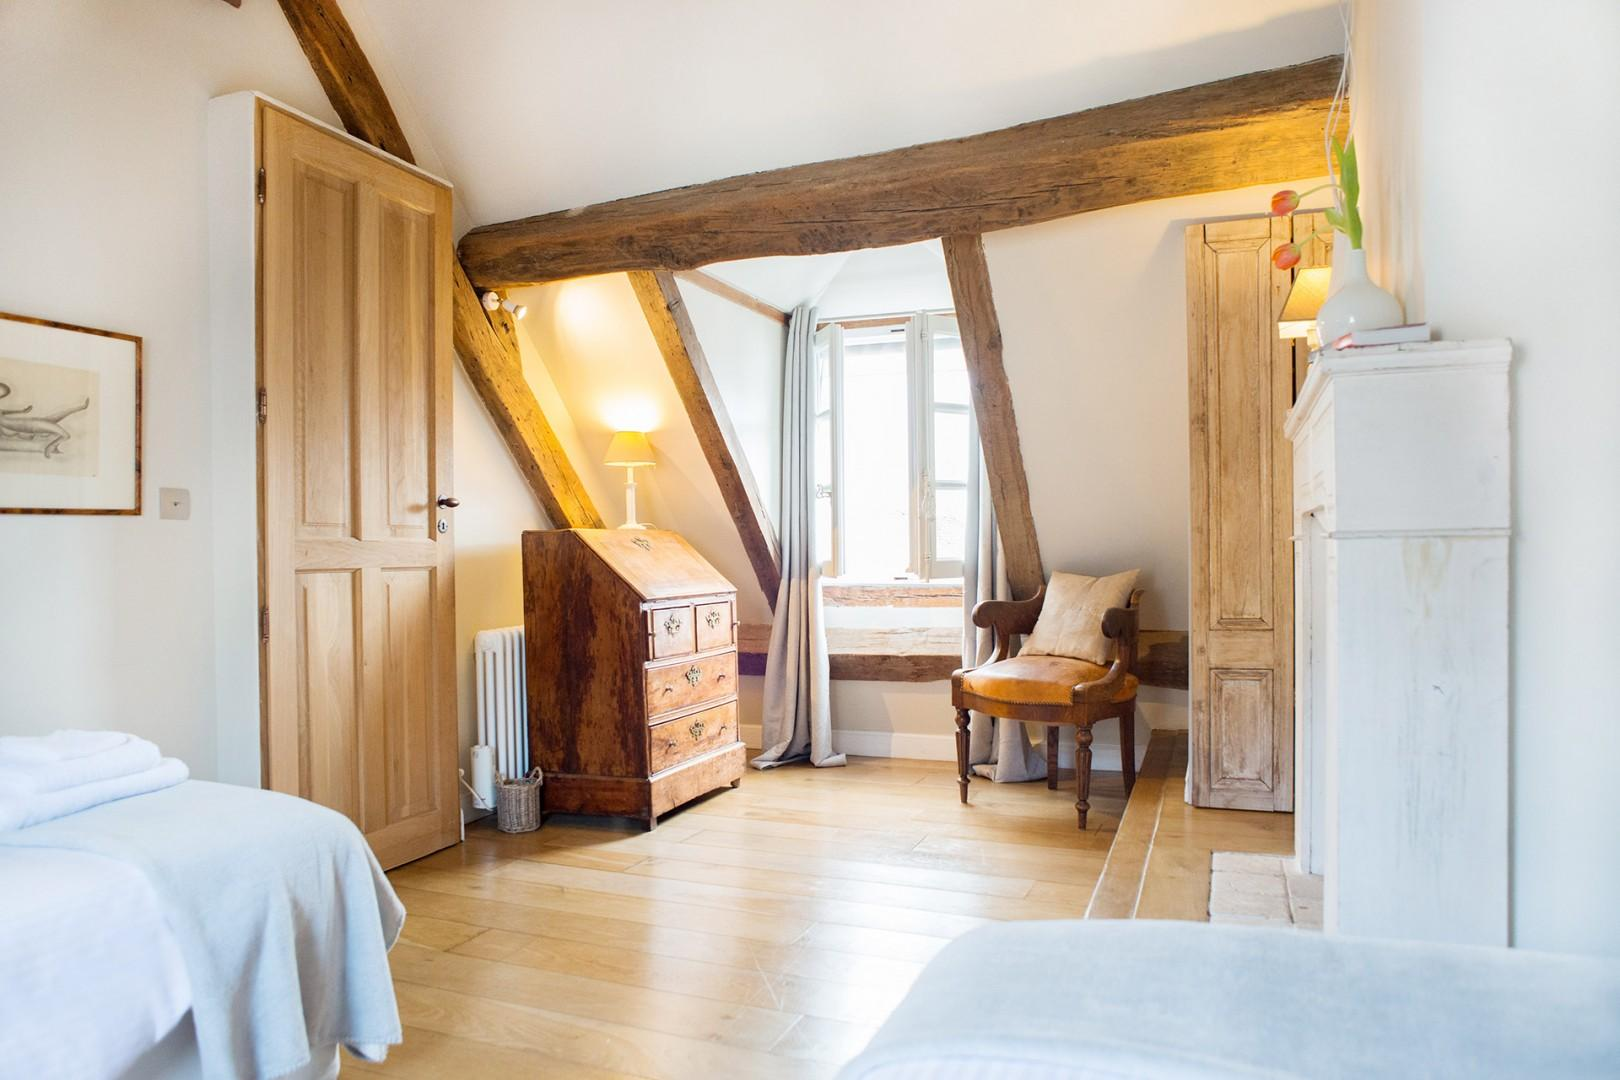 The oak beams and slanting ceiling continue in bedroom 2.